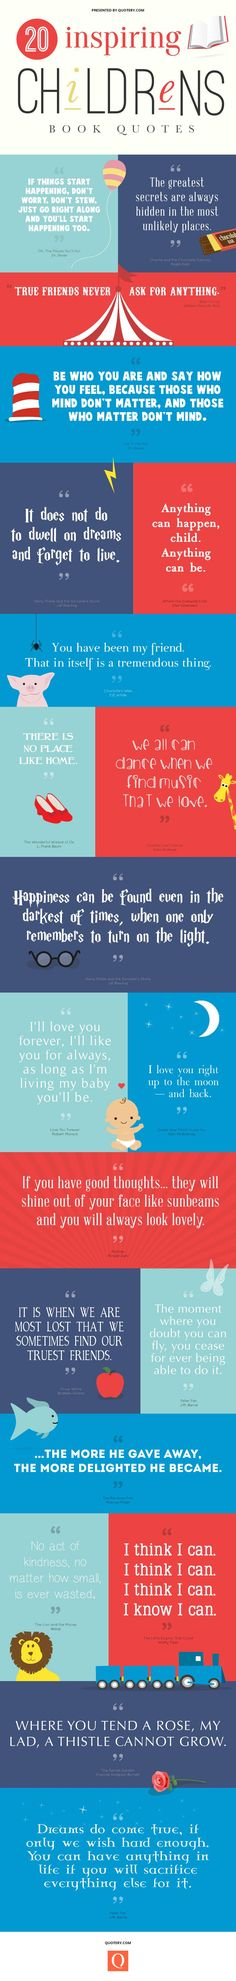 20 Inspiring Children's Book Quotes by quotery #Infographic #Childrens_Book_Quotes kid books, children book quotes, kid quotes, inspiring quotes, quot infograph, inspir children, 20 inspir, children books, 6718